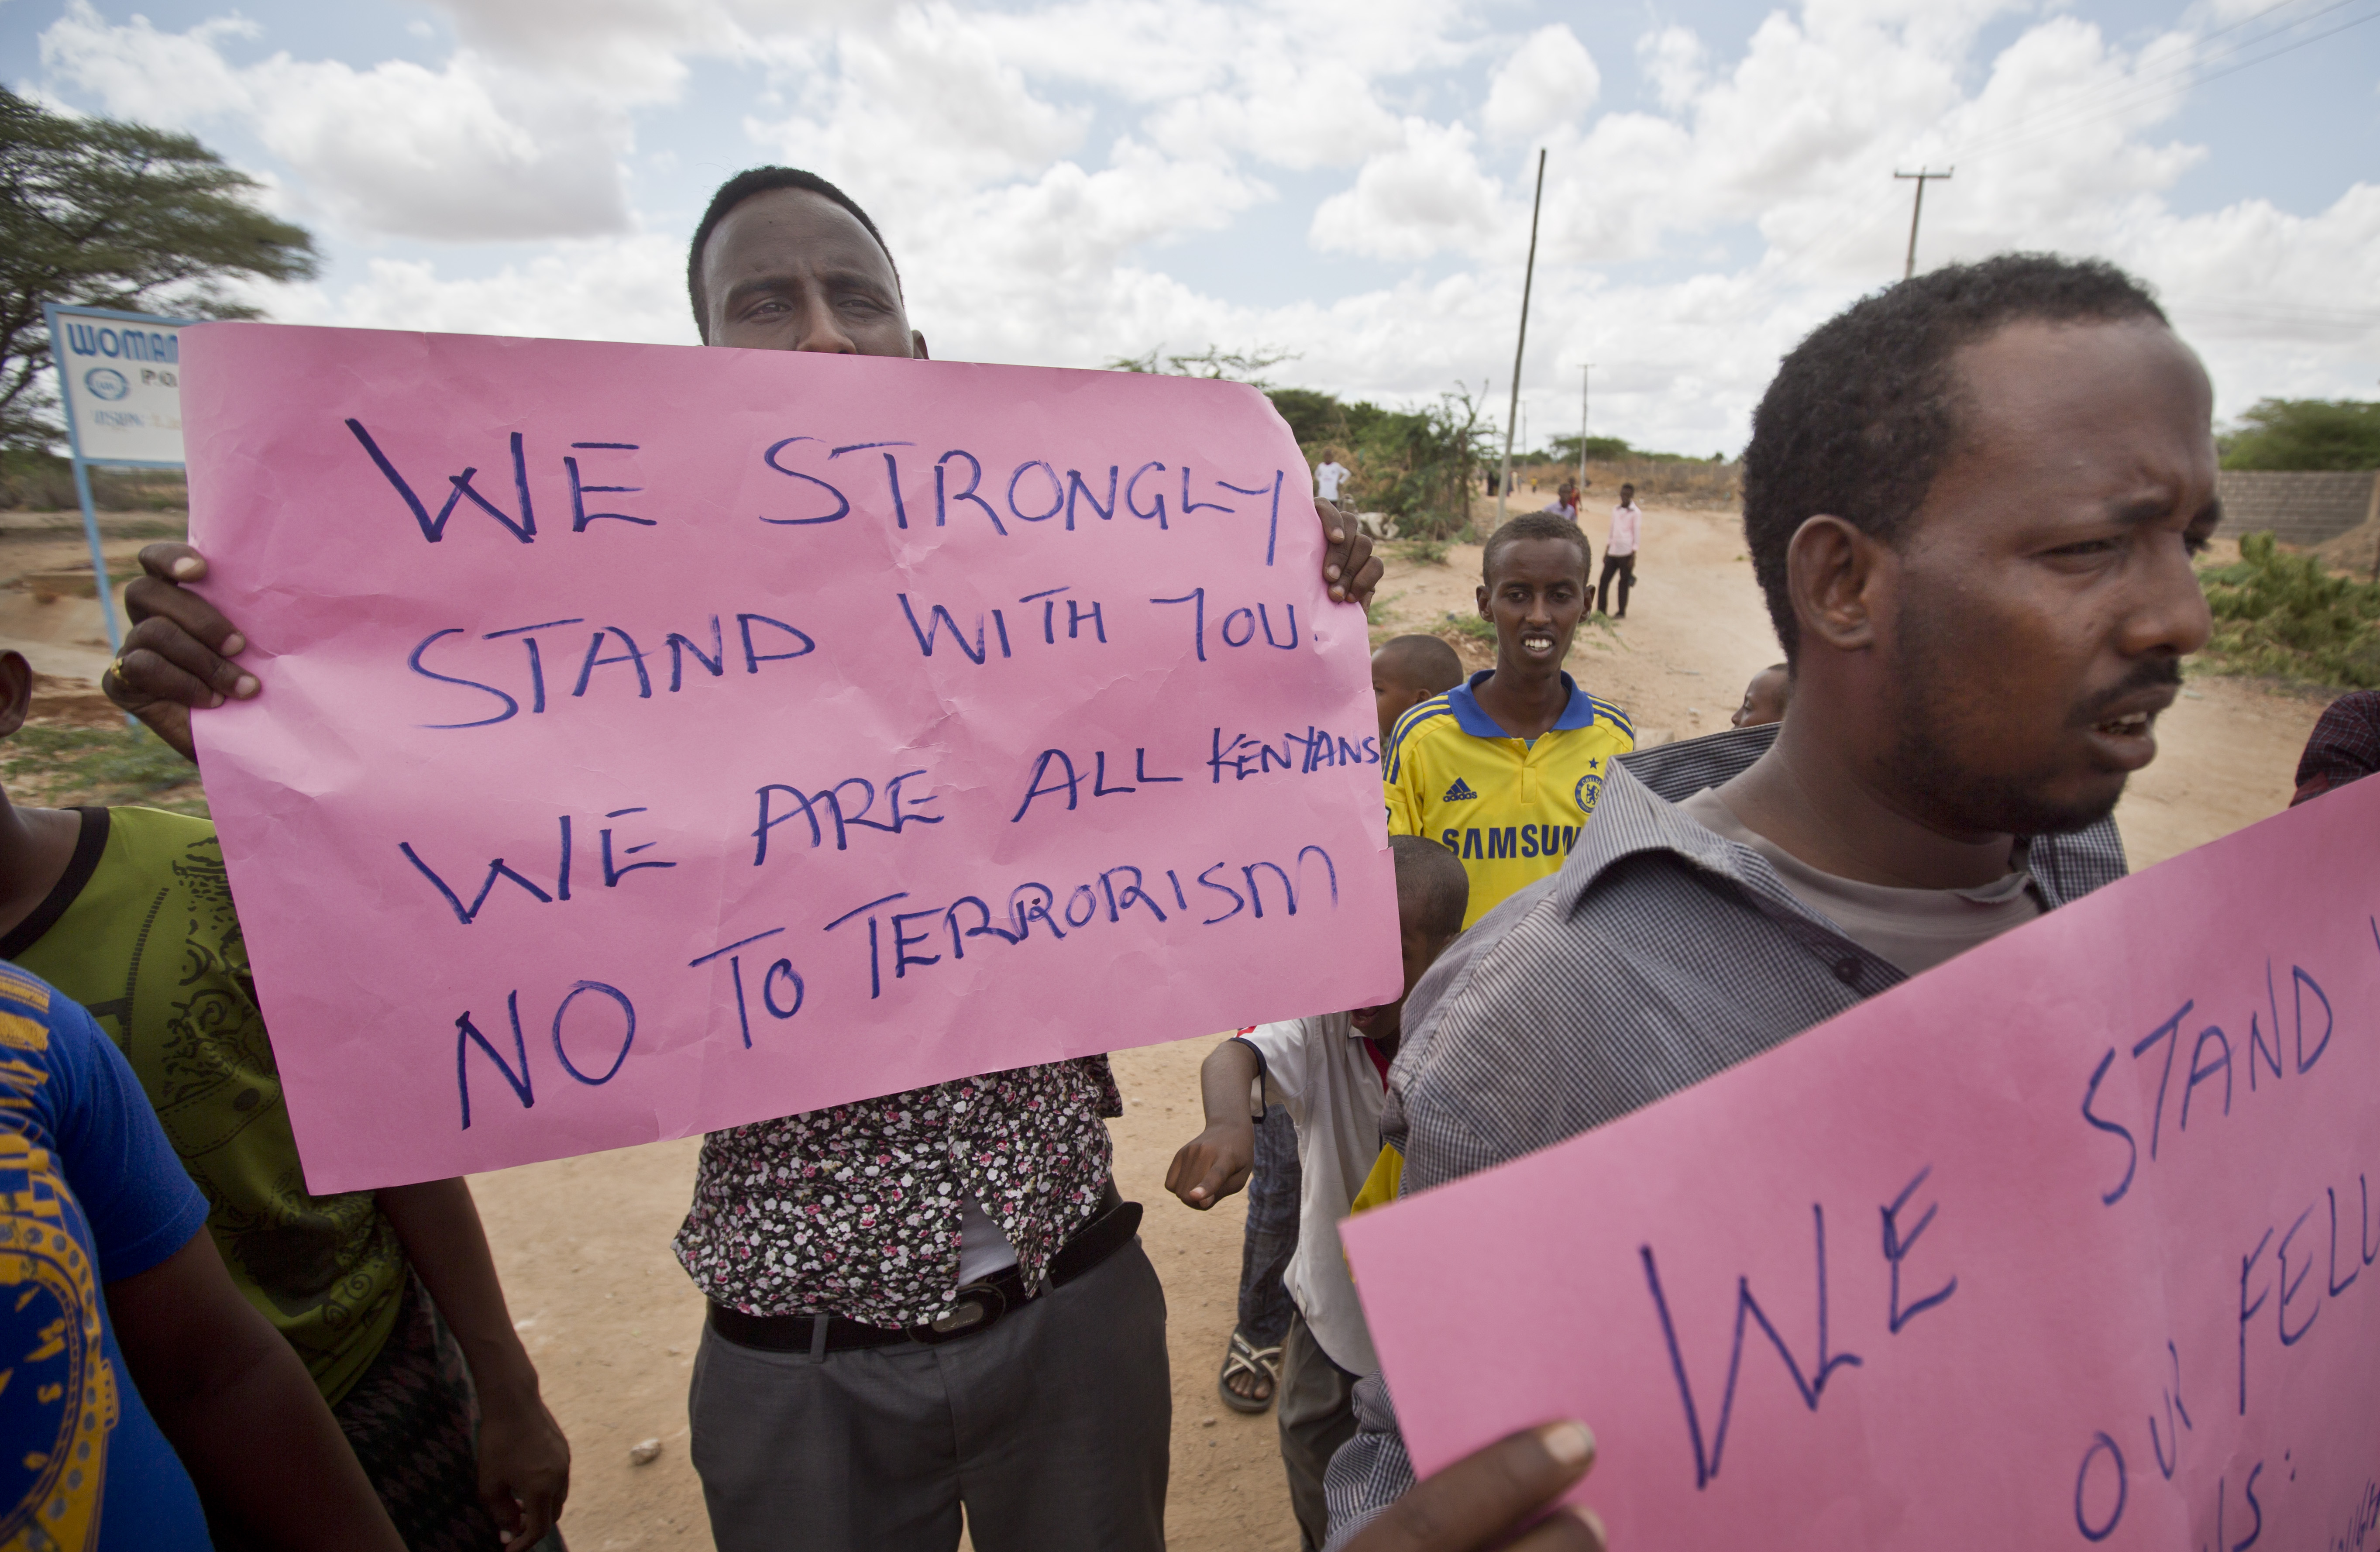 Kenyan Muslims demonstrate against Thursday's attack and in solidarity with non-Muslims who were targeted, on a street in Garissa, Kenya, April 3, 2015.